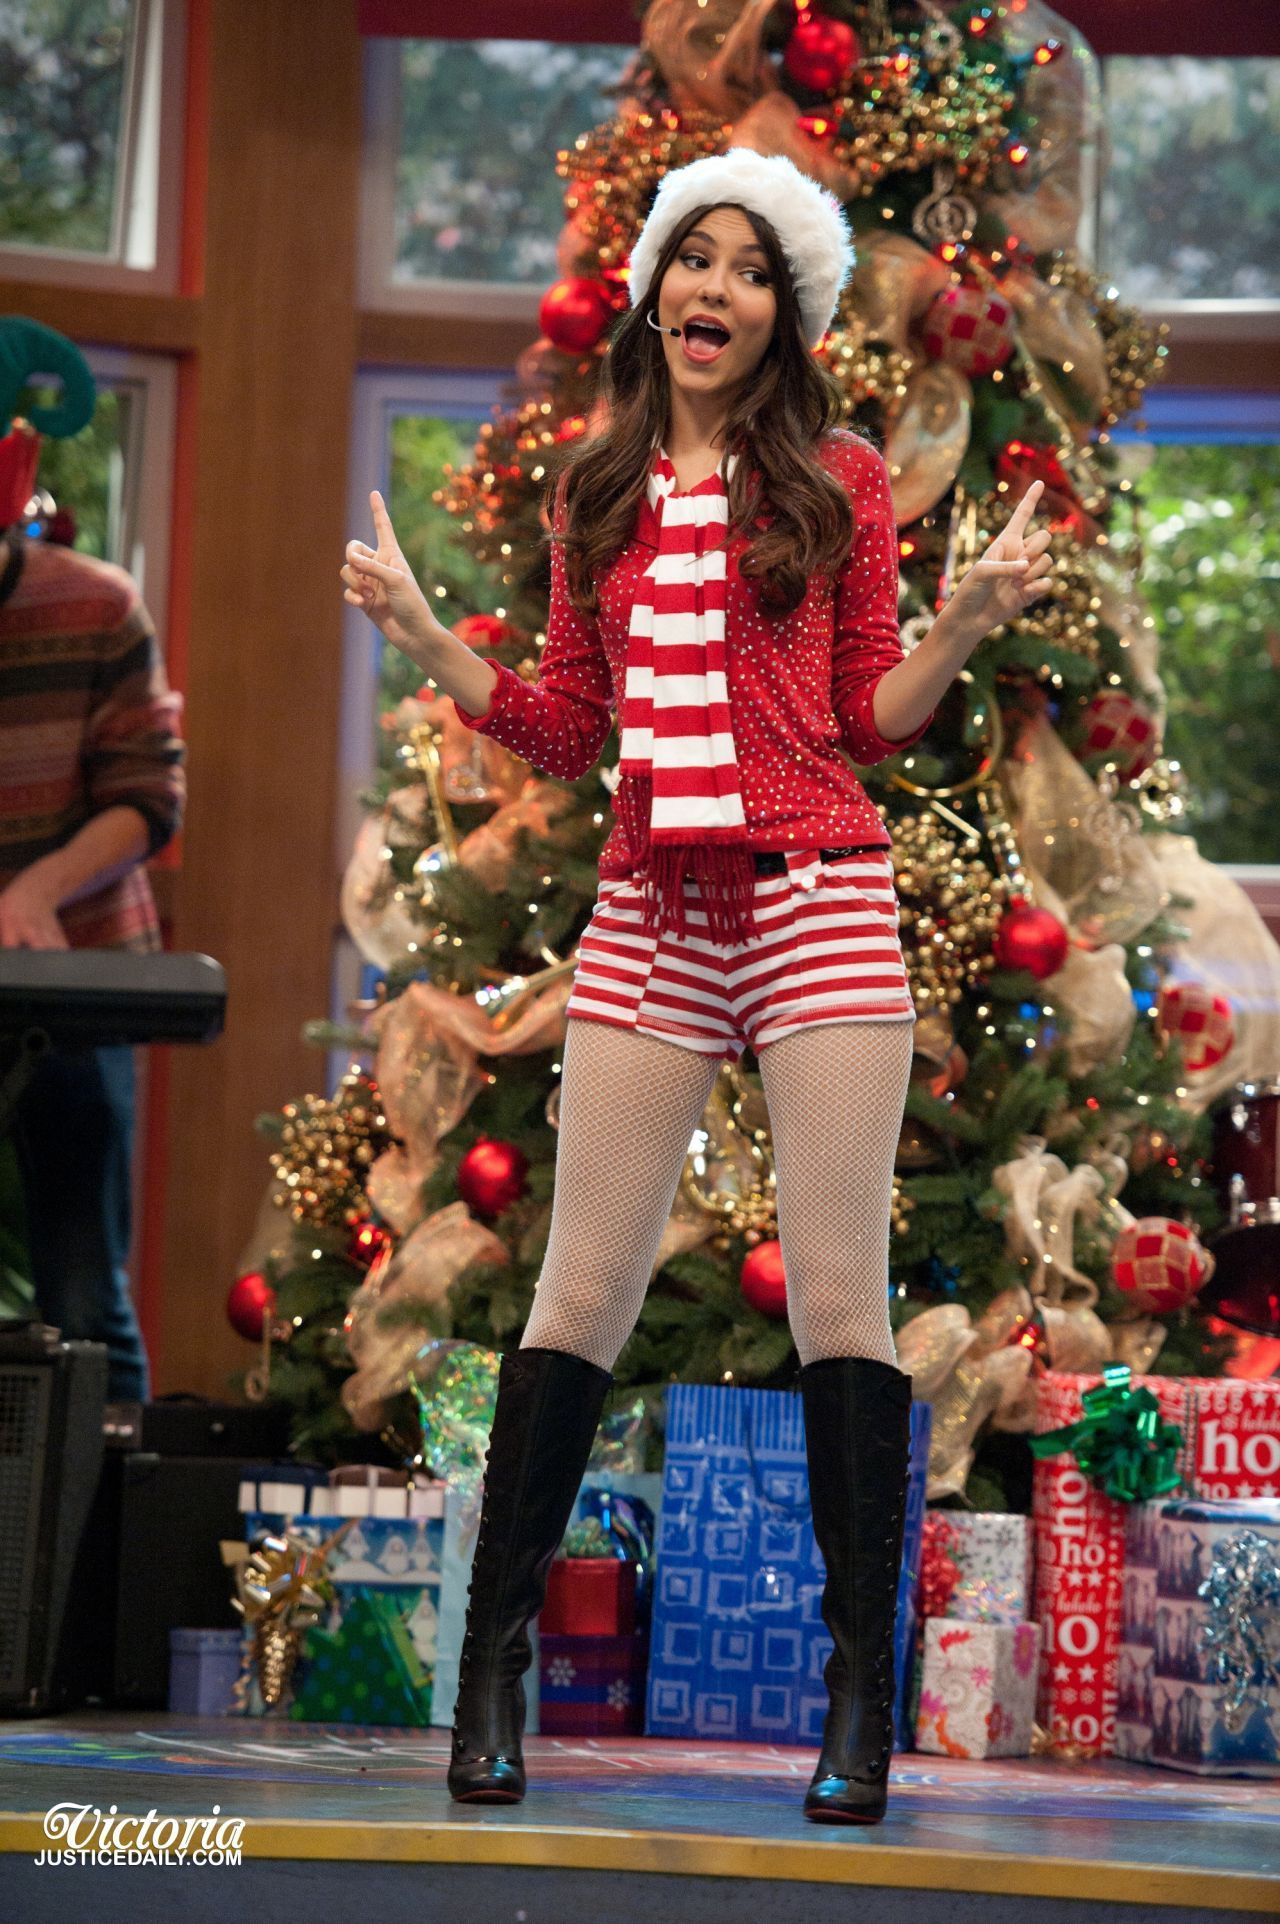 2020 Tori Vega Christmas Music Pin by Johan_C3 on Victoria justice style in 2020 | Victoria